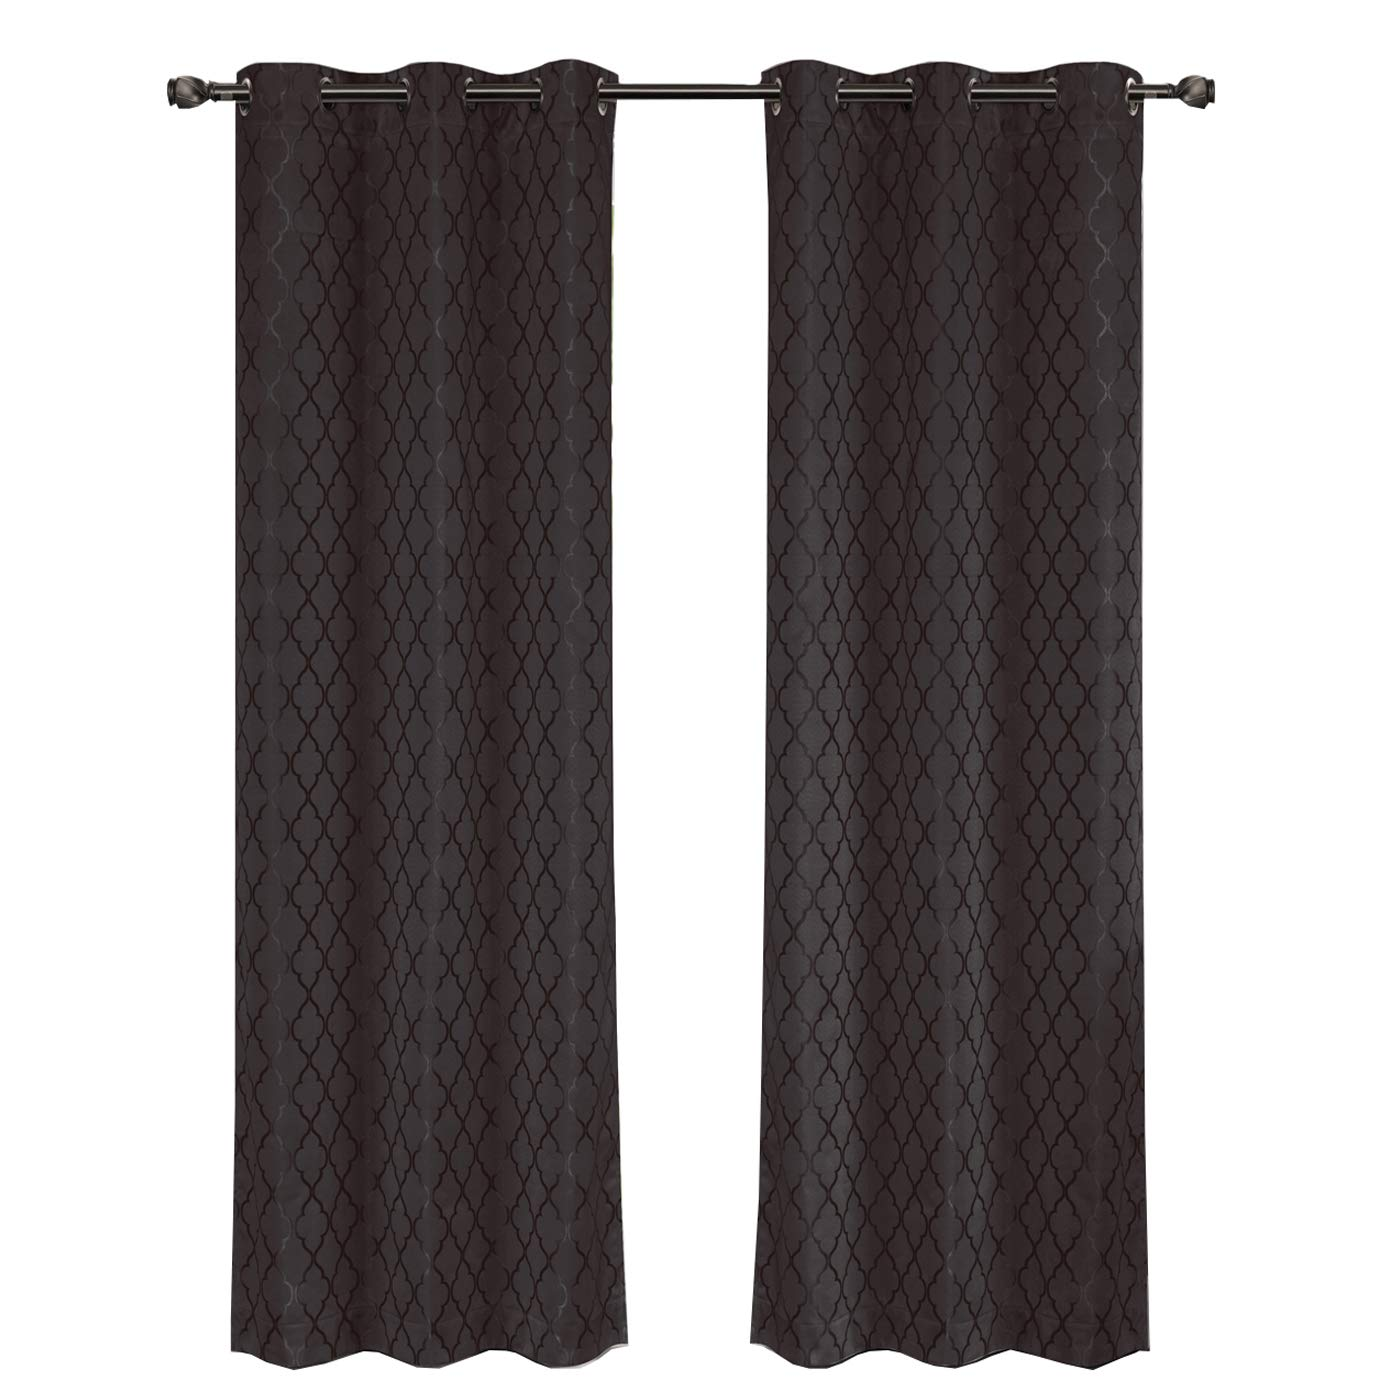 Willow Jacquard Charcoal Grommet Blackout Window Curtain Panels, Pair / Set of 2 Panels, 42x96 inches Each, by Royal Hotel